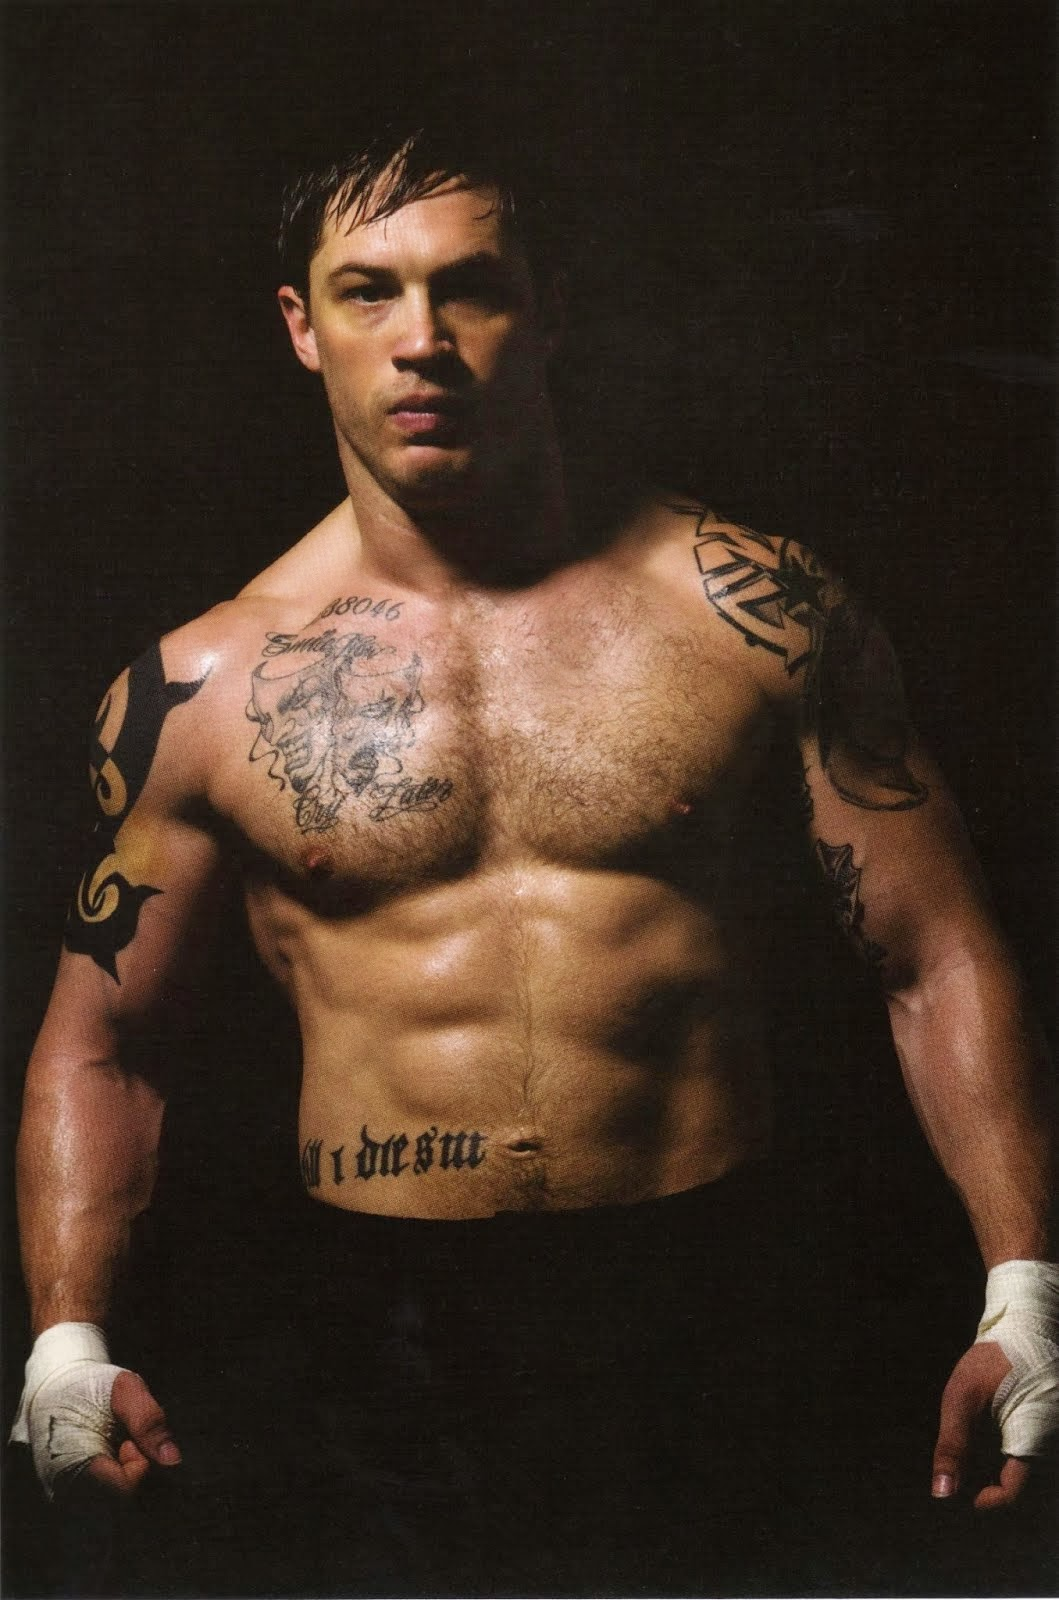 Remington 'Riptide' Tate (Tom Hardy)